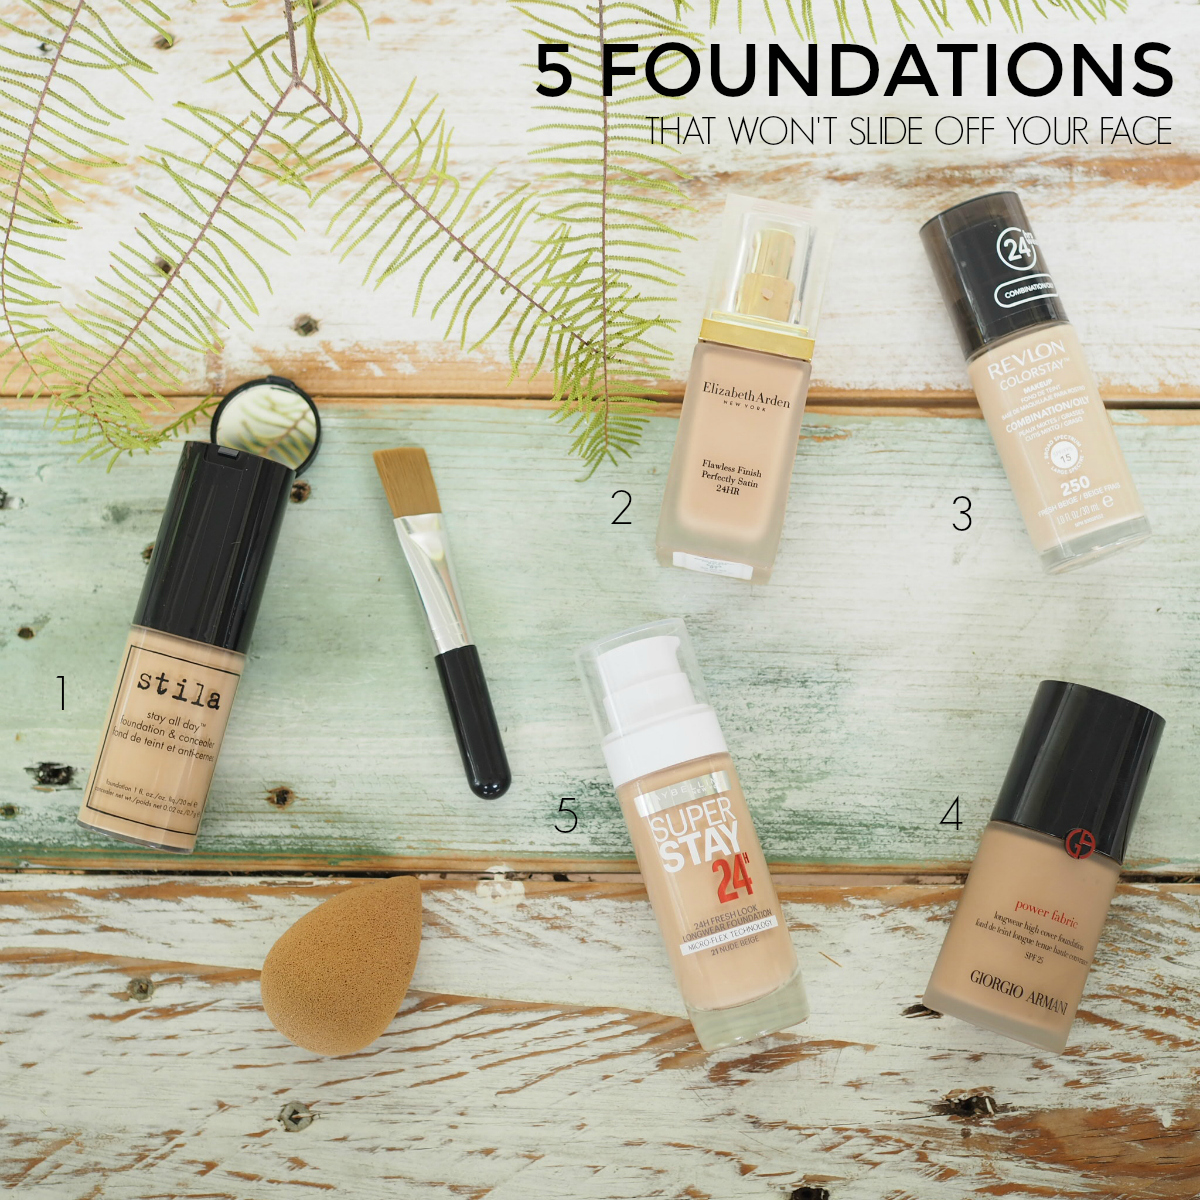 5 foundations that won't slide off your face